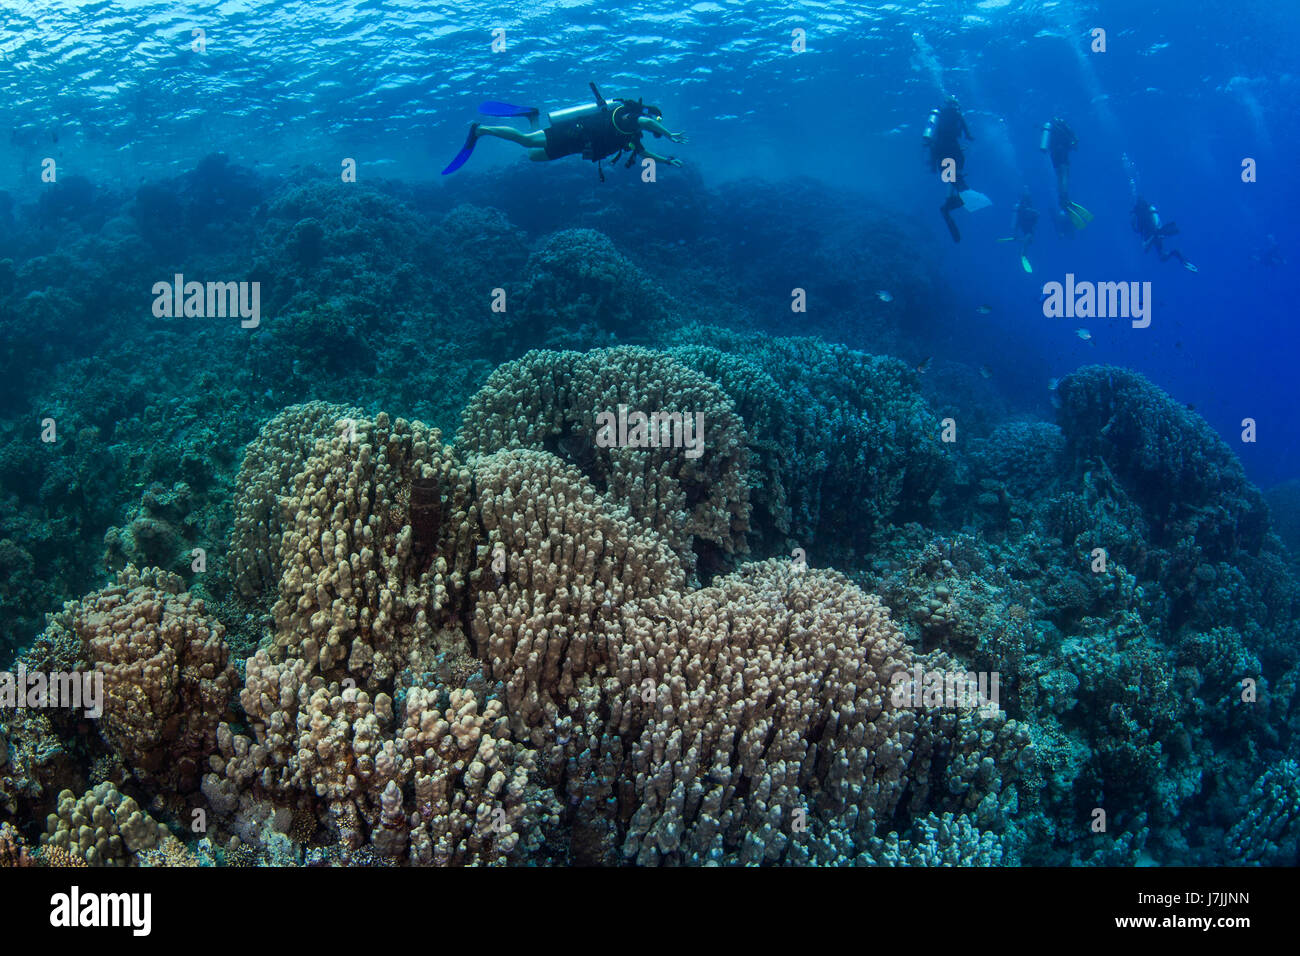 Scuba divers explore hard coral reef in the Red Sea off the coast of Egypt. Stock Photo